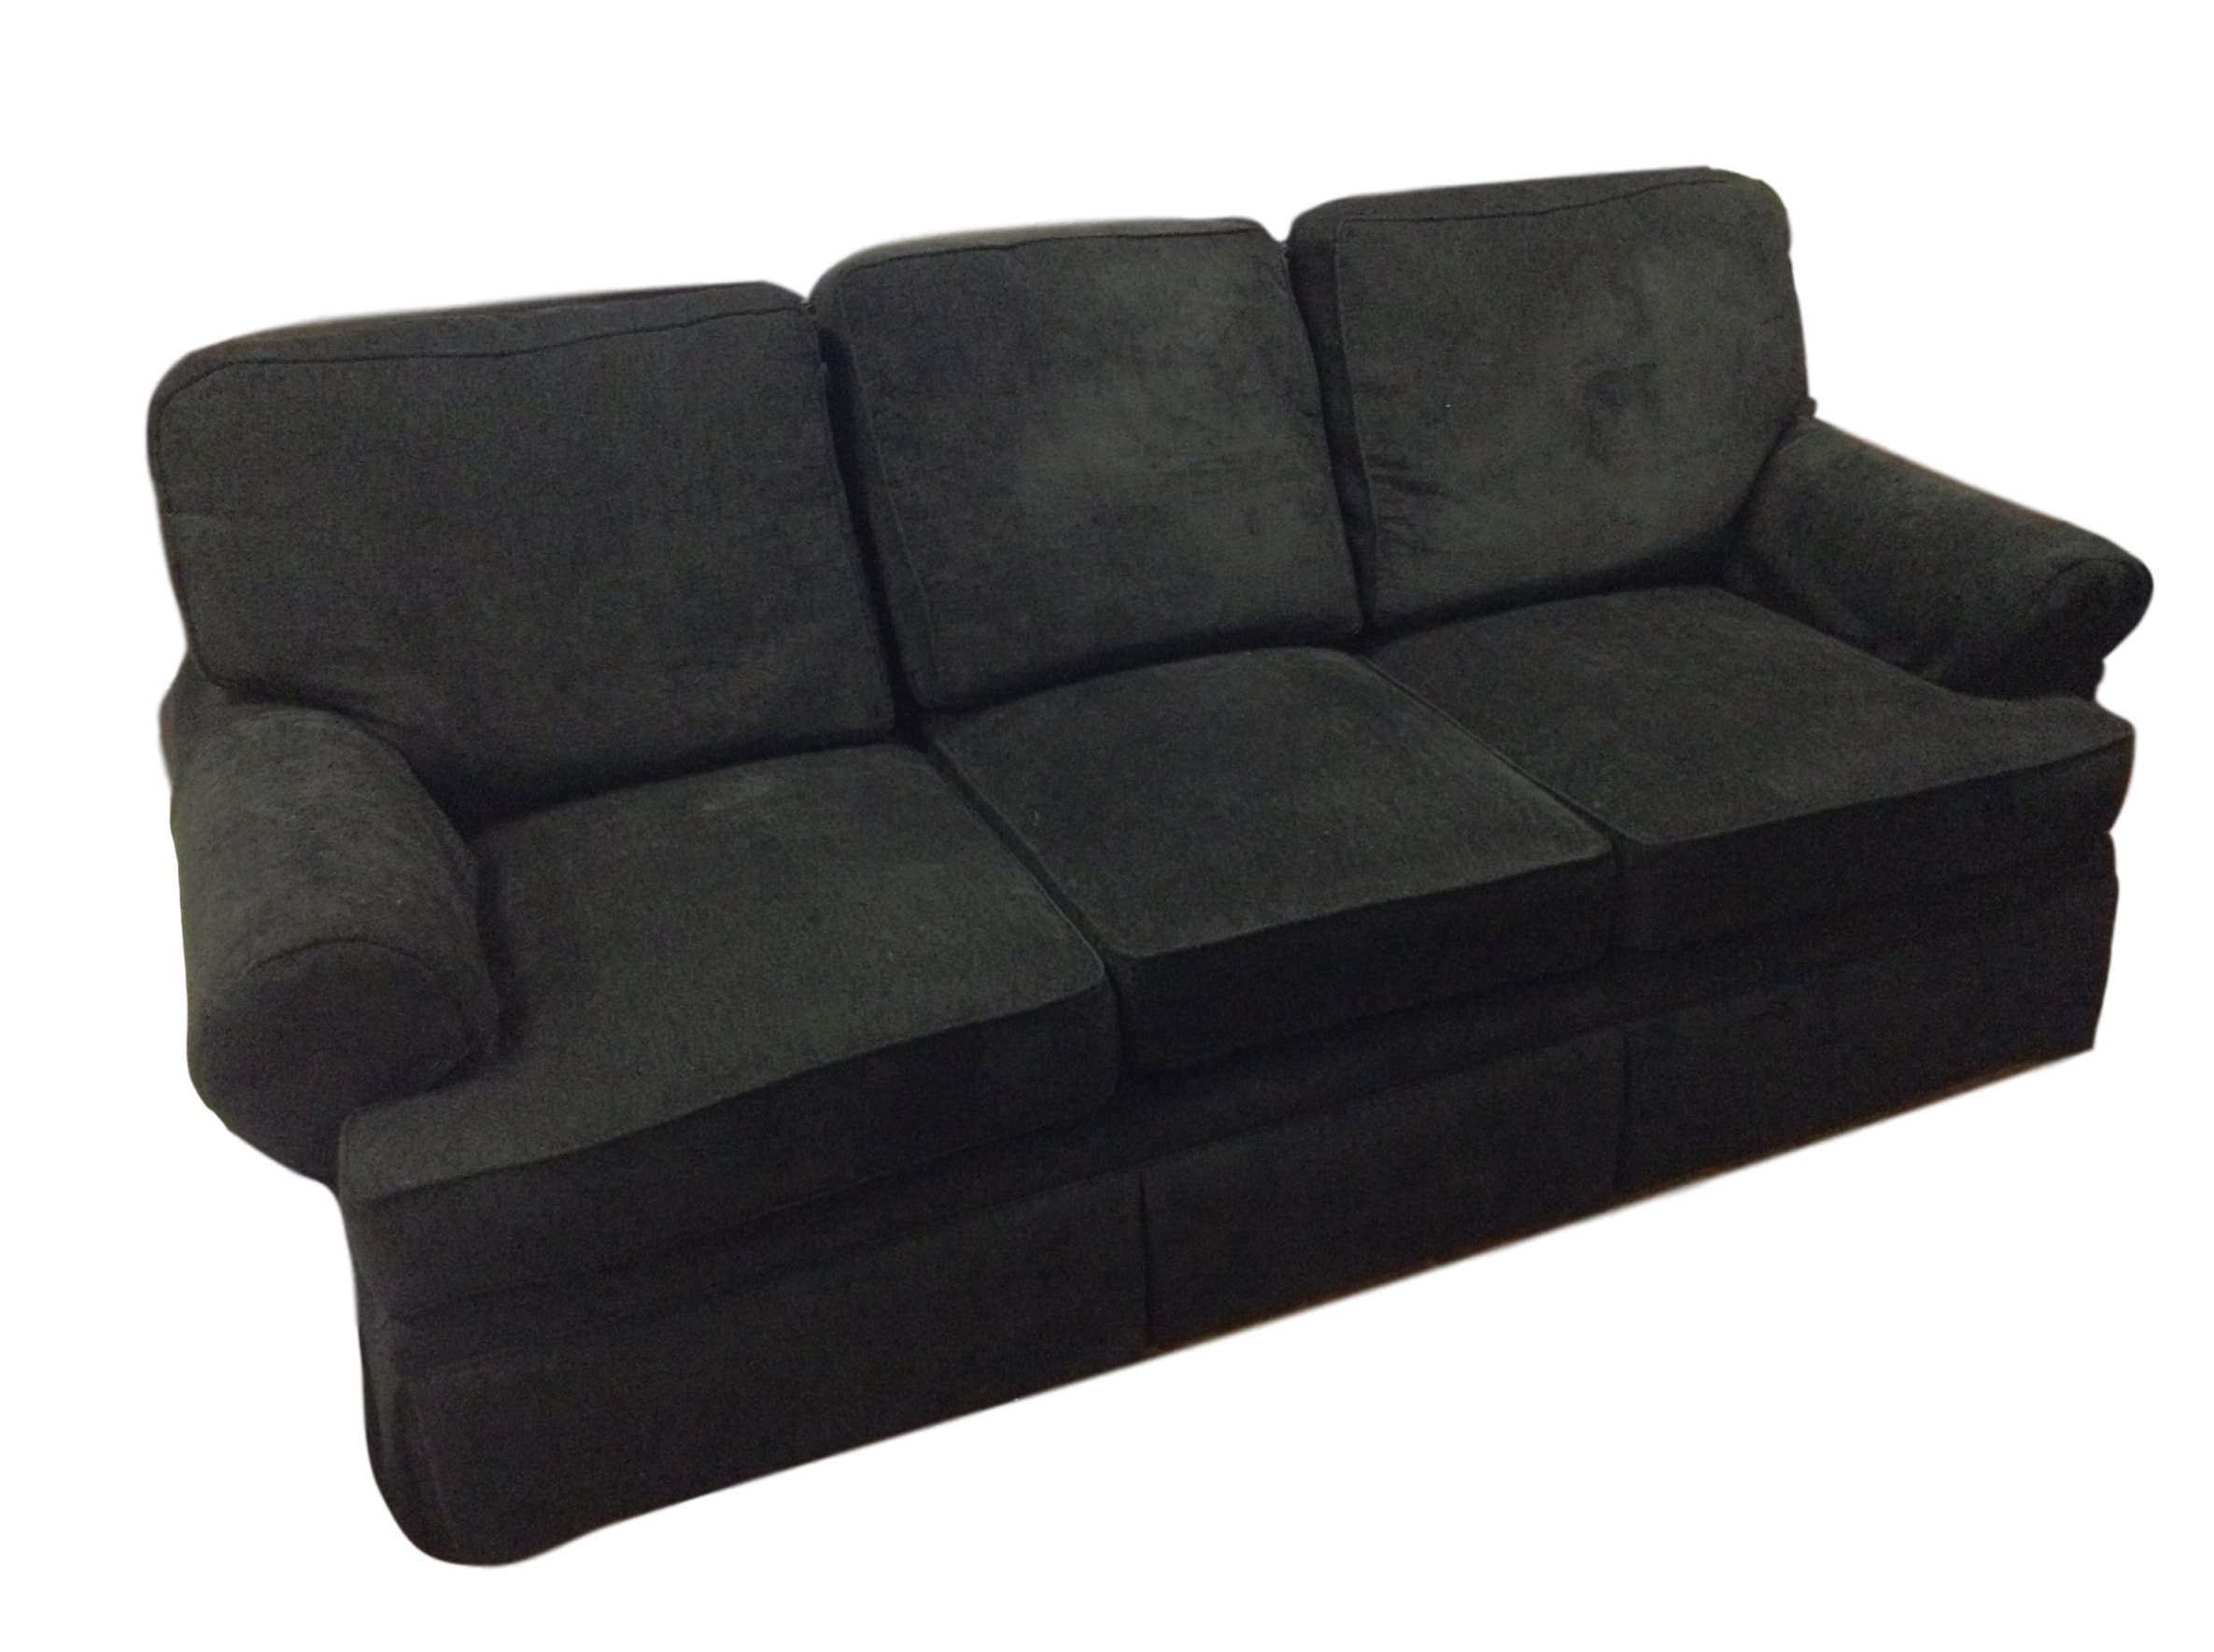 henredon sofa fabrics contemporary garden uk black alabama furniture